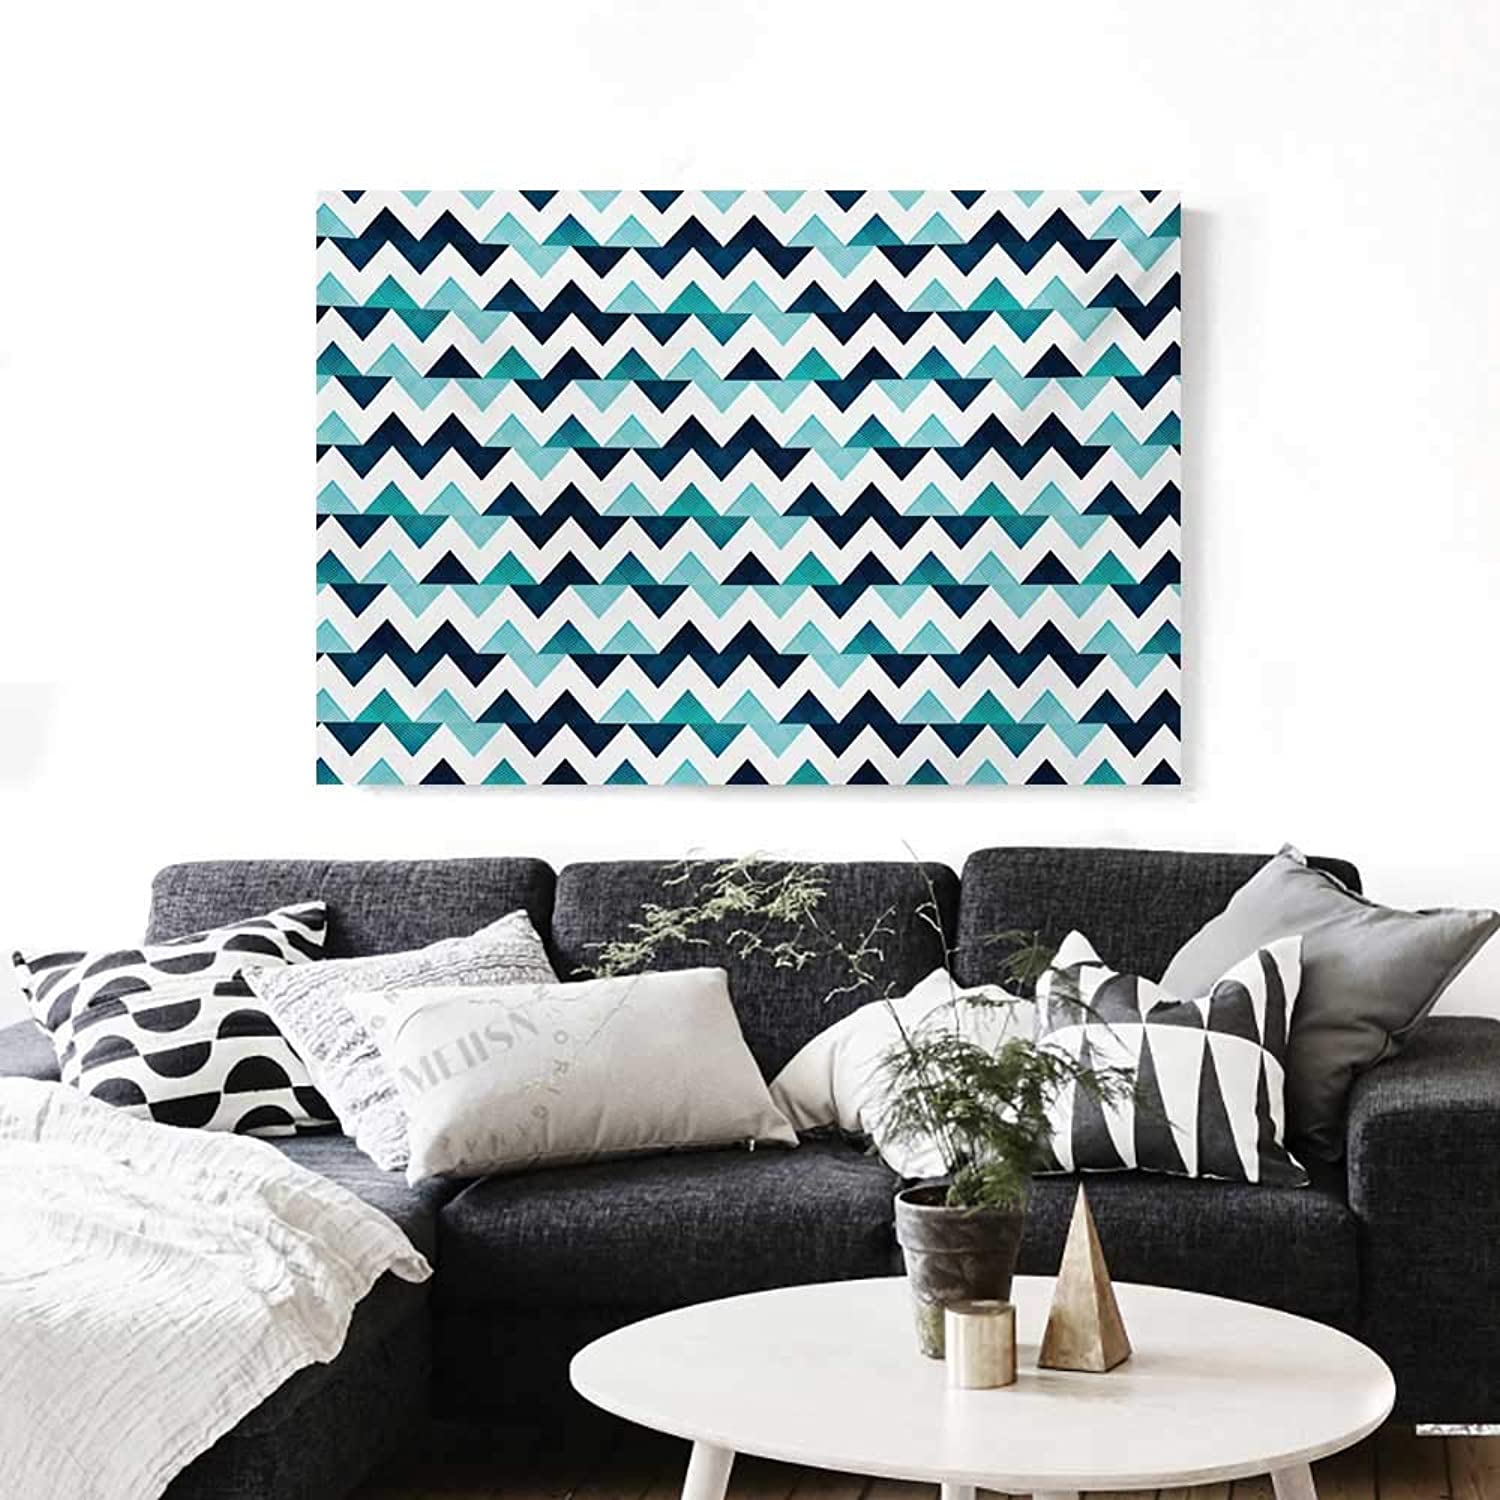 bluee and White Canvas Wall Art for Bedroom Home Decorations Horizontal Zigzag Borders with Striped Design and Modern Look Art Stickers 48 x32  Dark bluee Pale bluee White